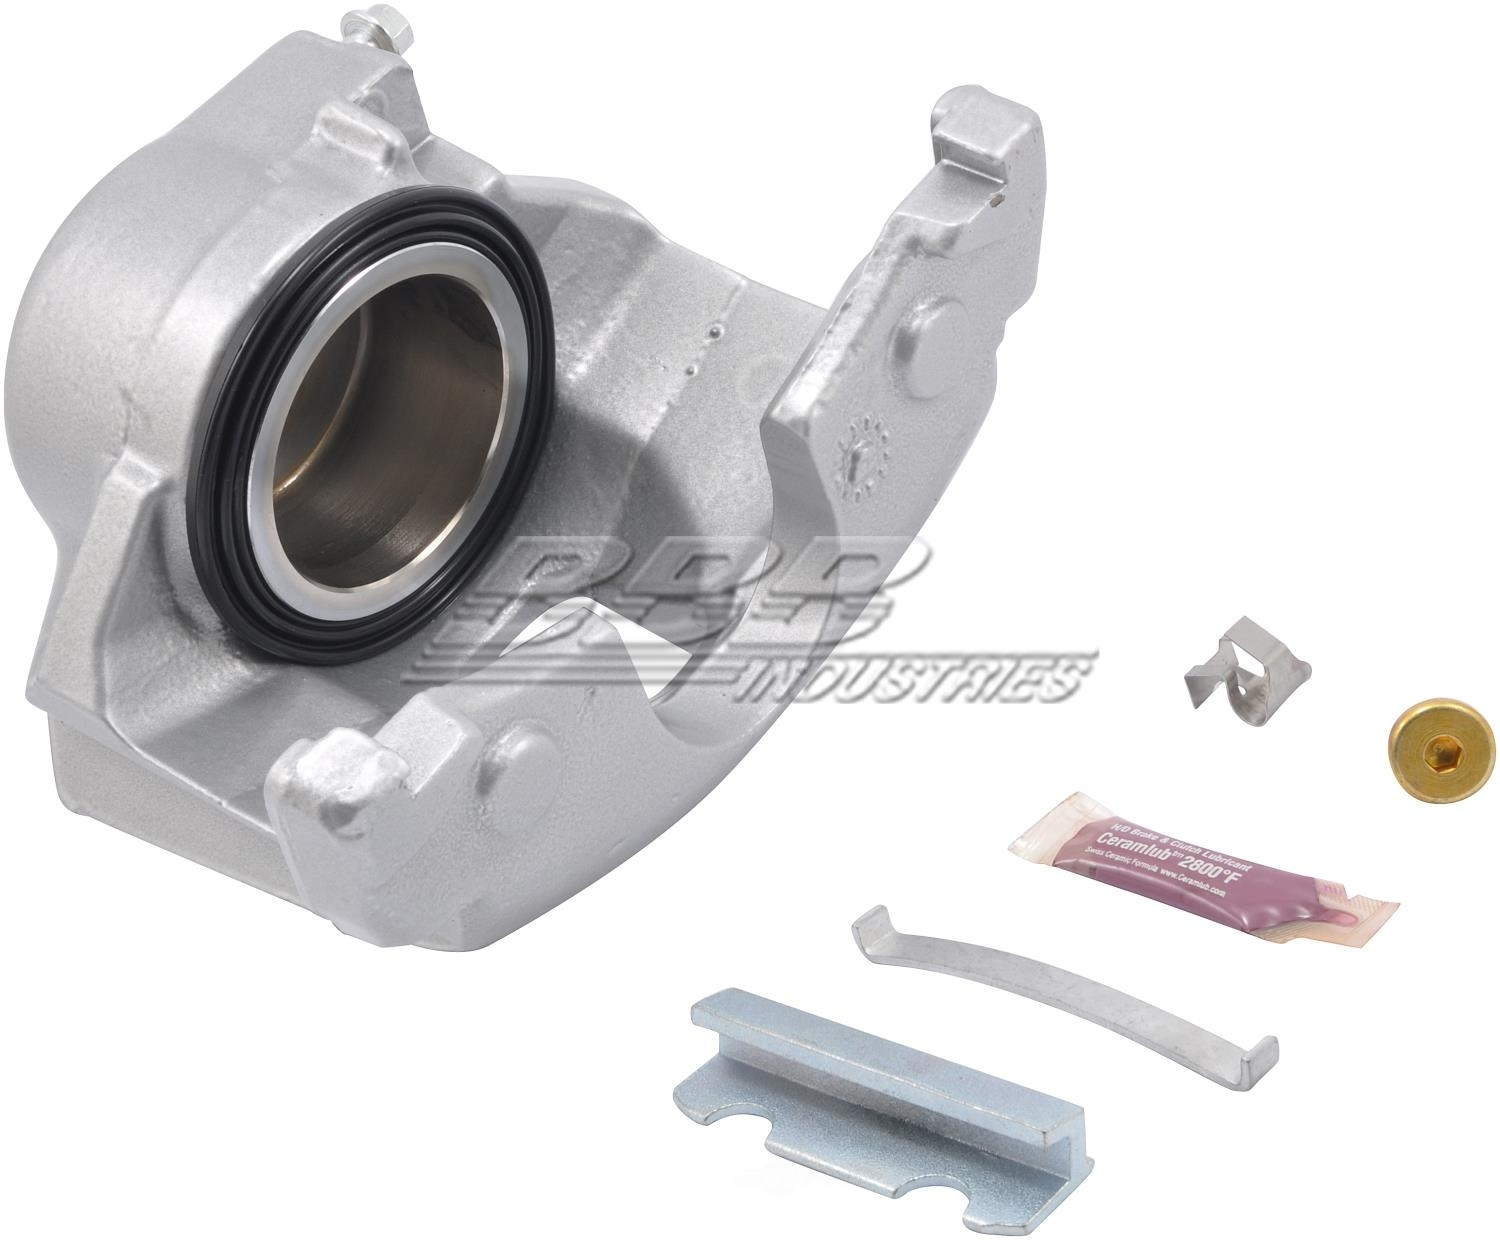 BBB INDUSTRIES - Reman Caliper W/installation Hardware (Front Left) - BBA 97-17632B